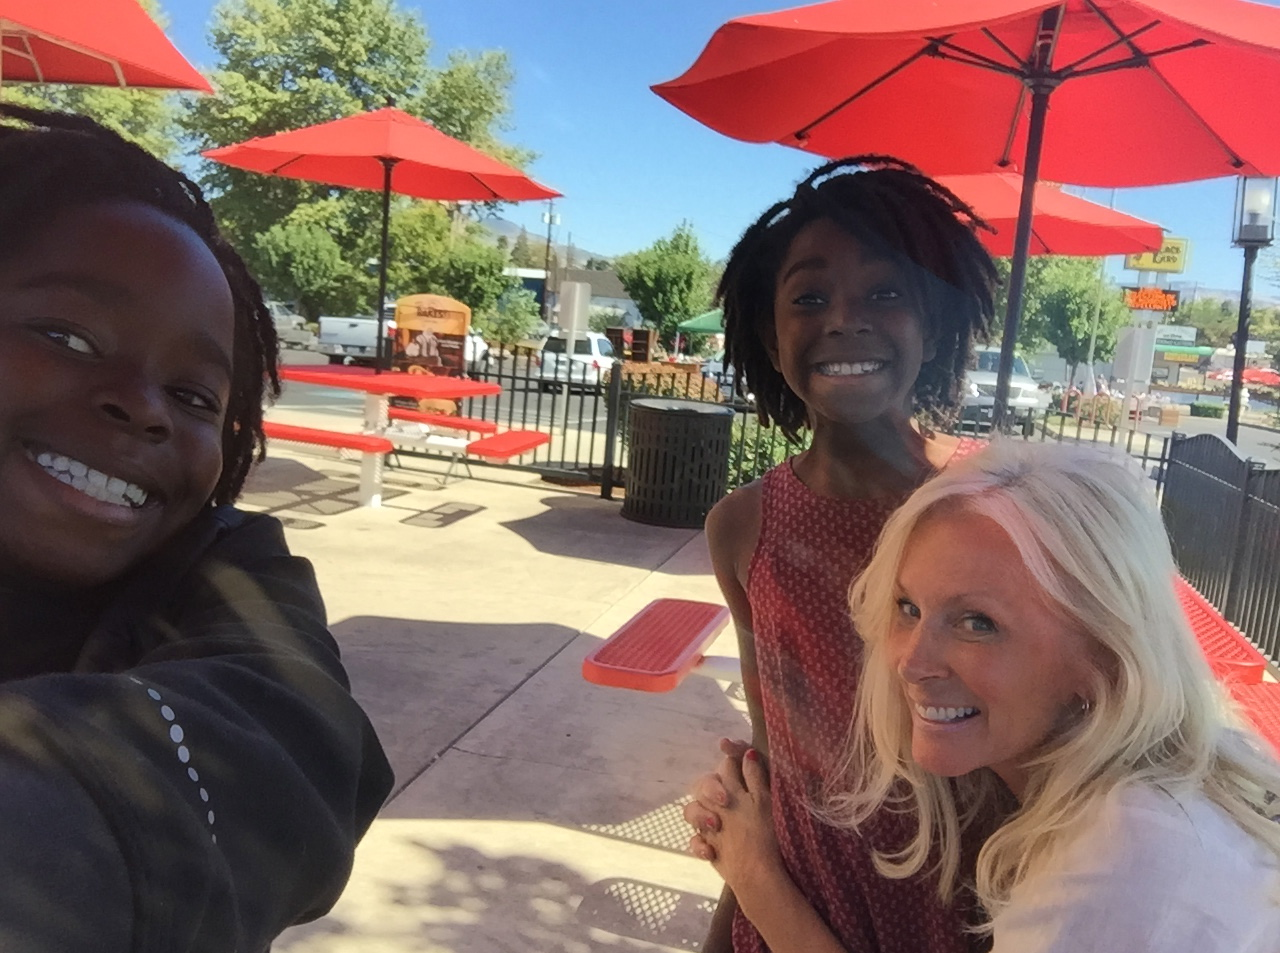 """Lula taking a """"Selfie"""" yesterday of """"Girls day out with the Fro's (Dreads) """"✌️✌️"""